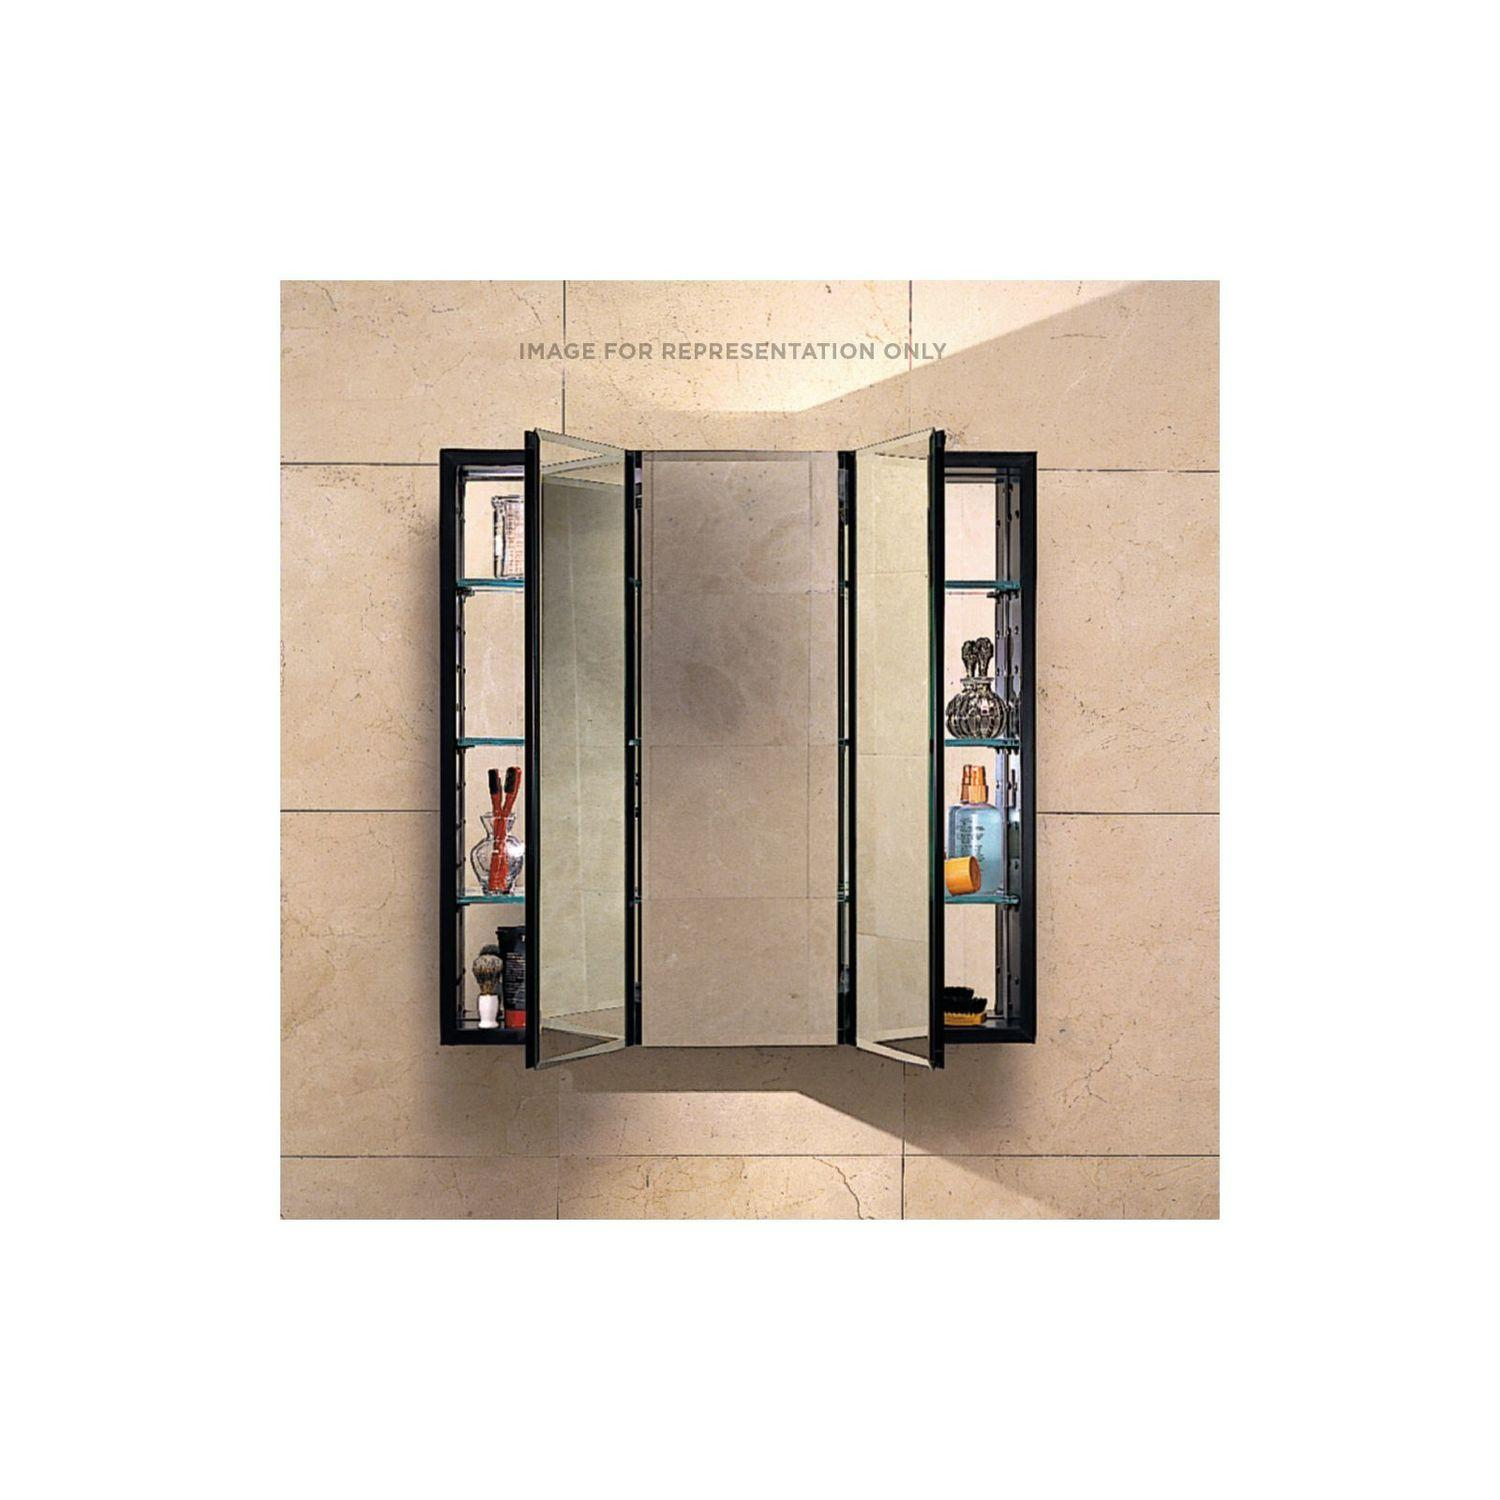 """Pl Series 36"""" X 30"""" X 4"""" Three Door Cabinet With Bevel Edge, Black Interior and Non-electric"""